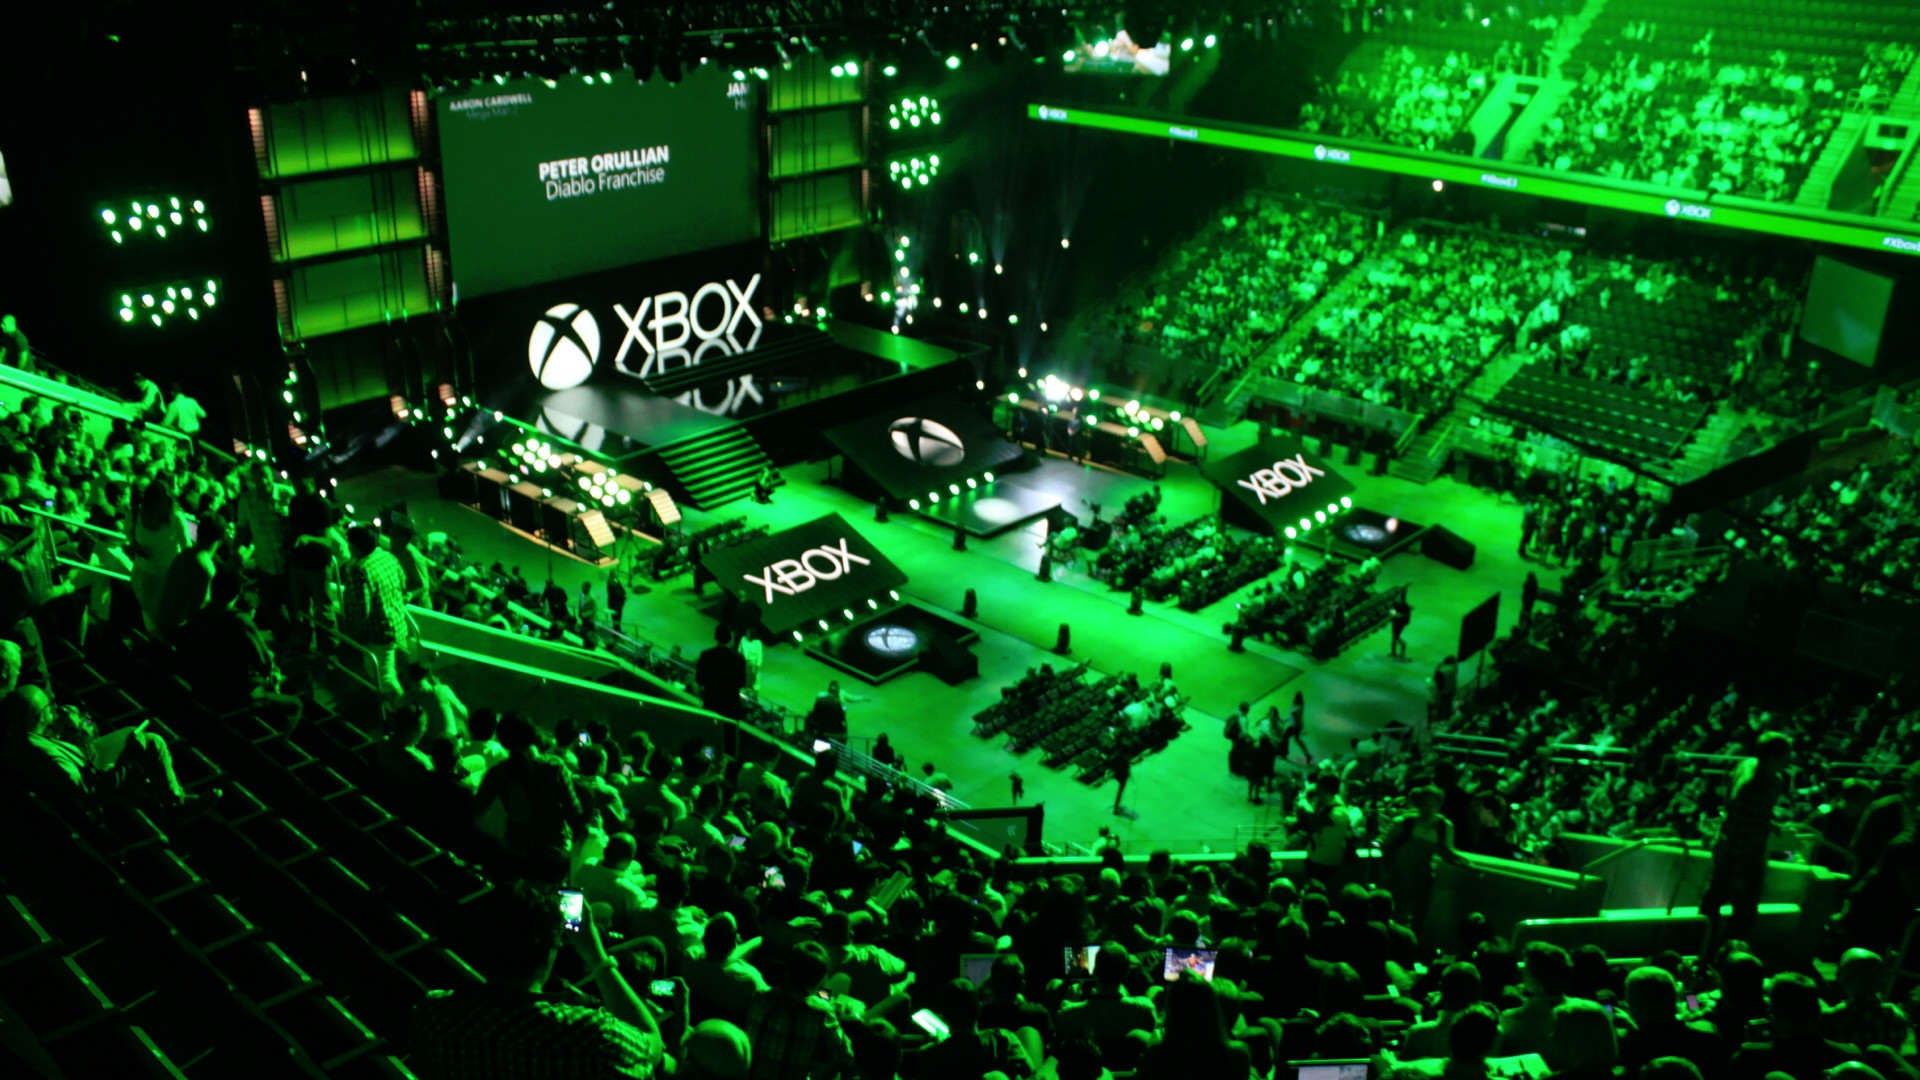 Microsoft Tease Something Special Coming At E3 xbox e3 2014